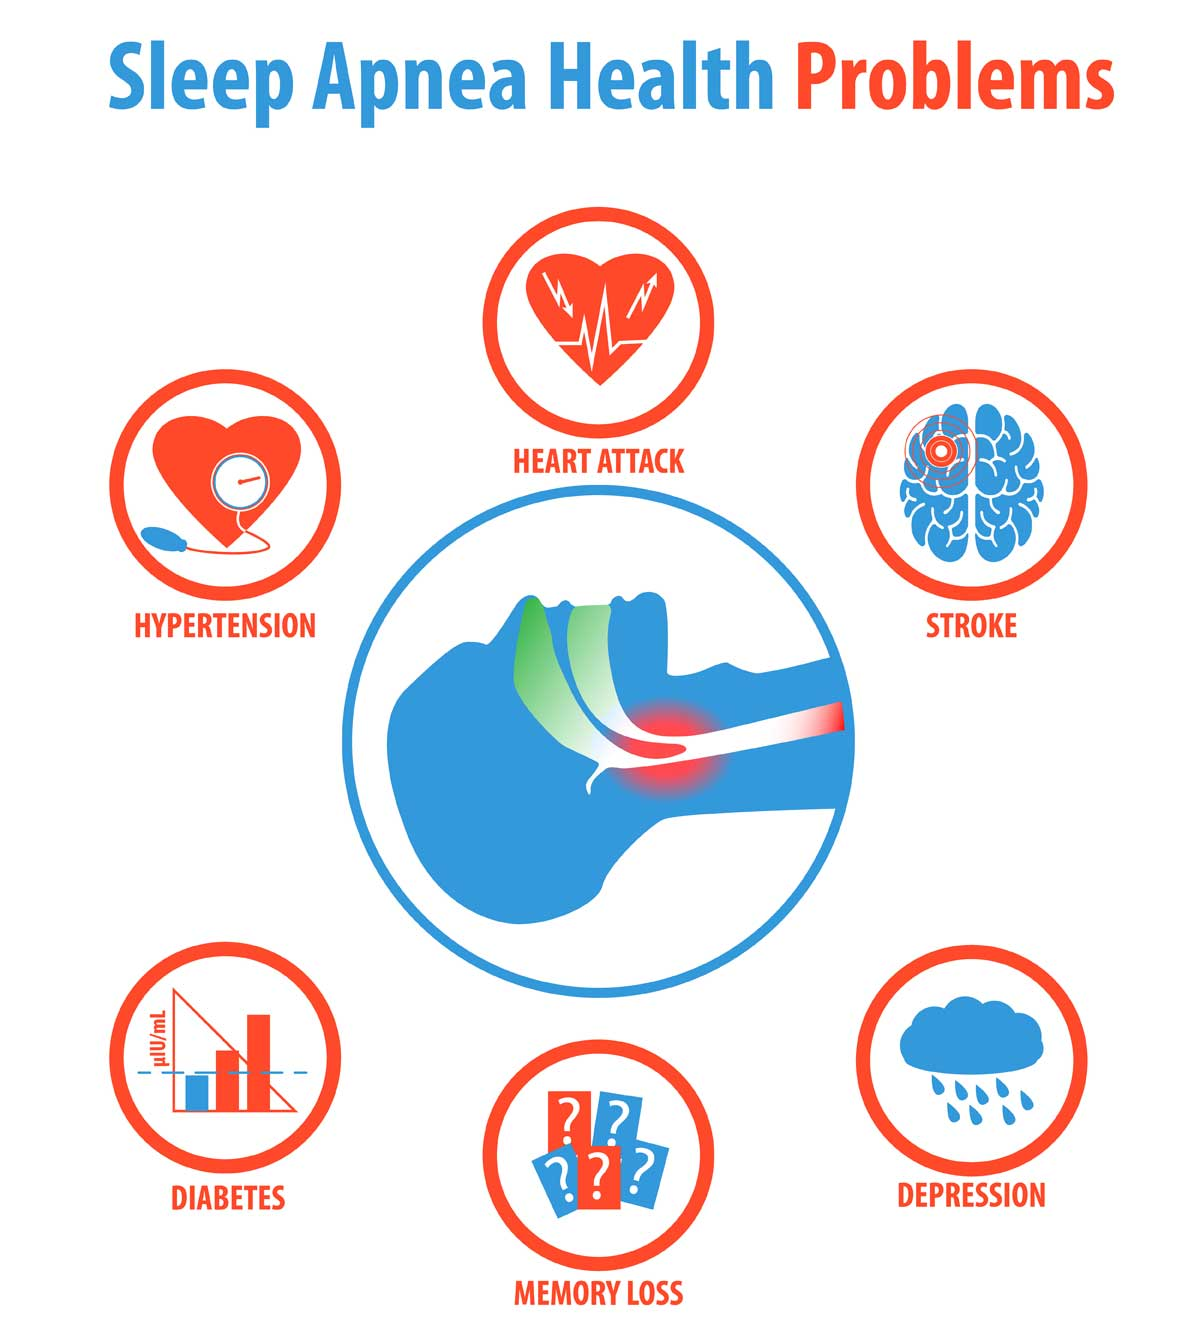 List of Sleep Apnea Problems